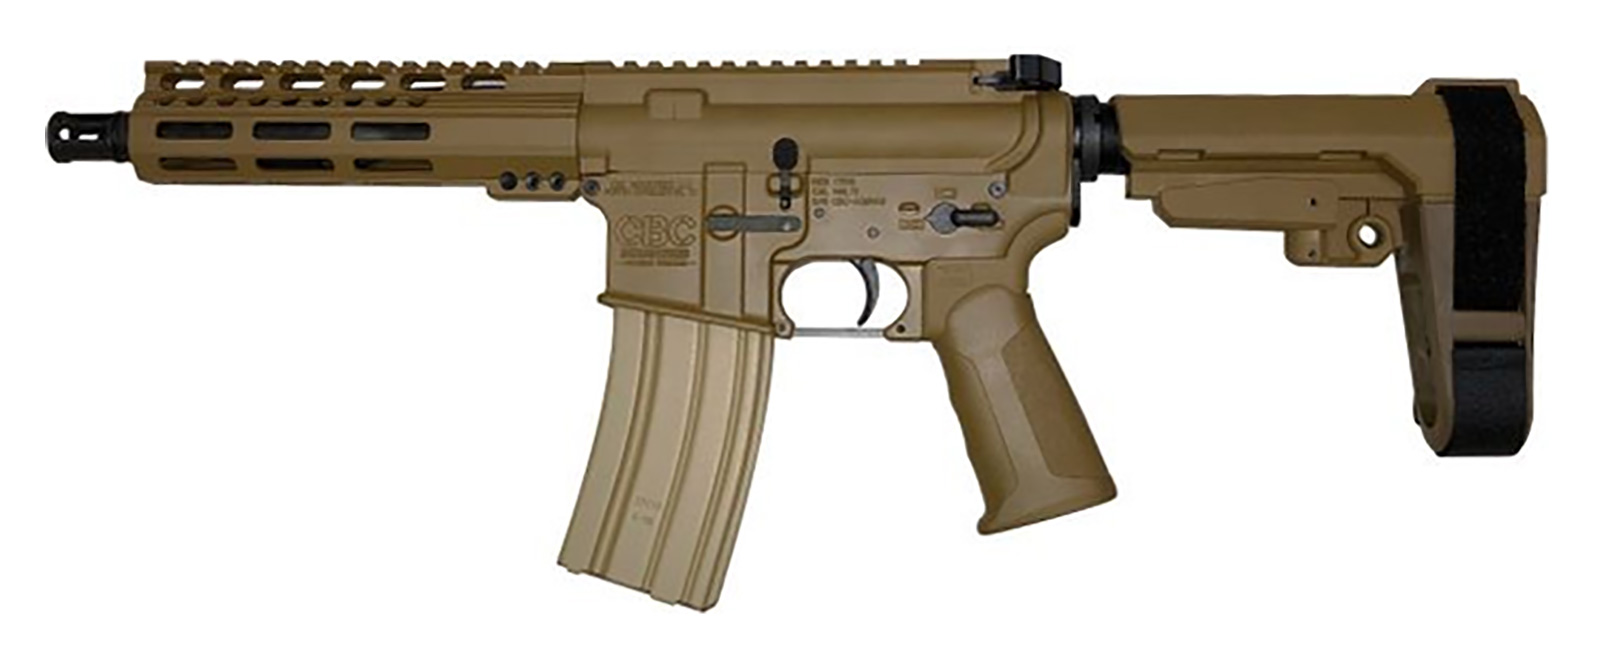 cbc-ps2-forged-aluminum-ar-pistol-coyote-brown-5-56-nato-7-5″-barrel-7″-m-lok-rail-sb3-brace